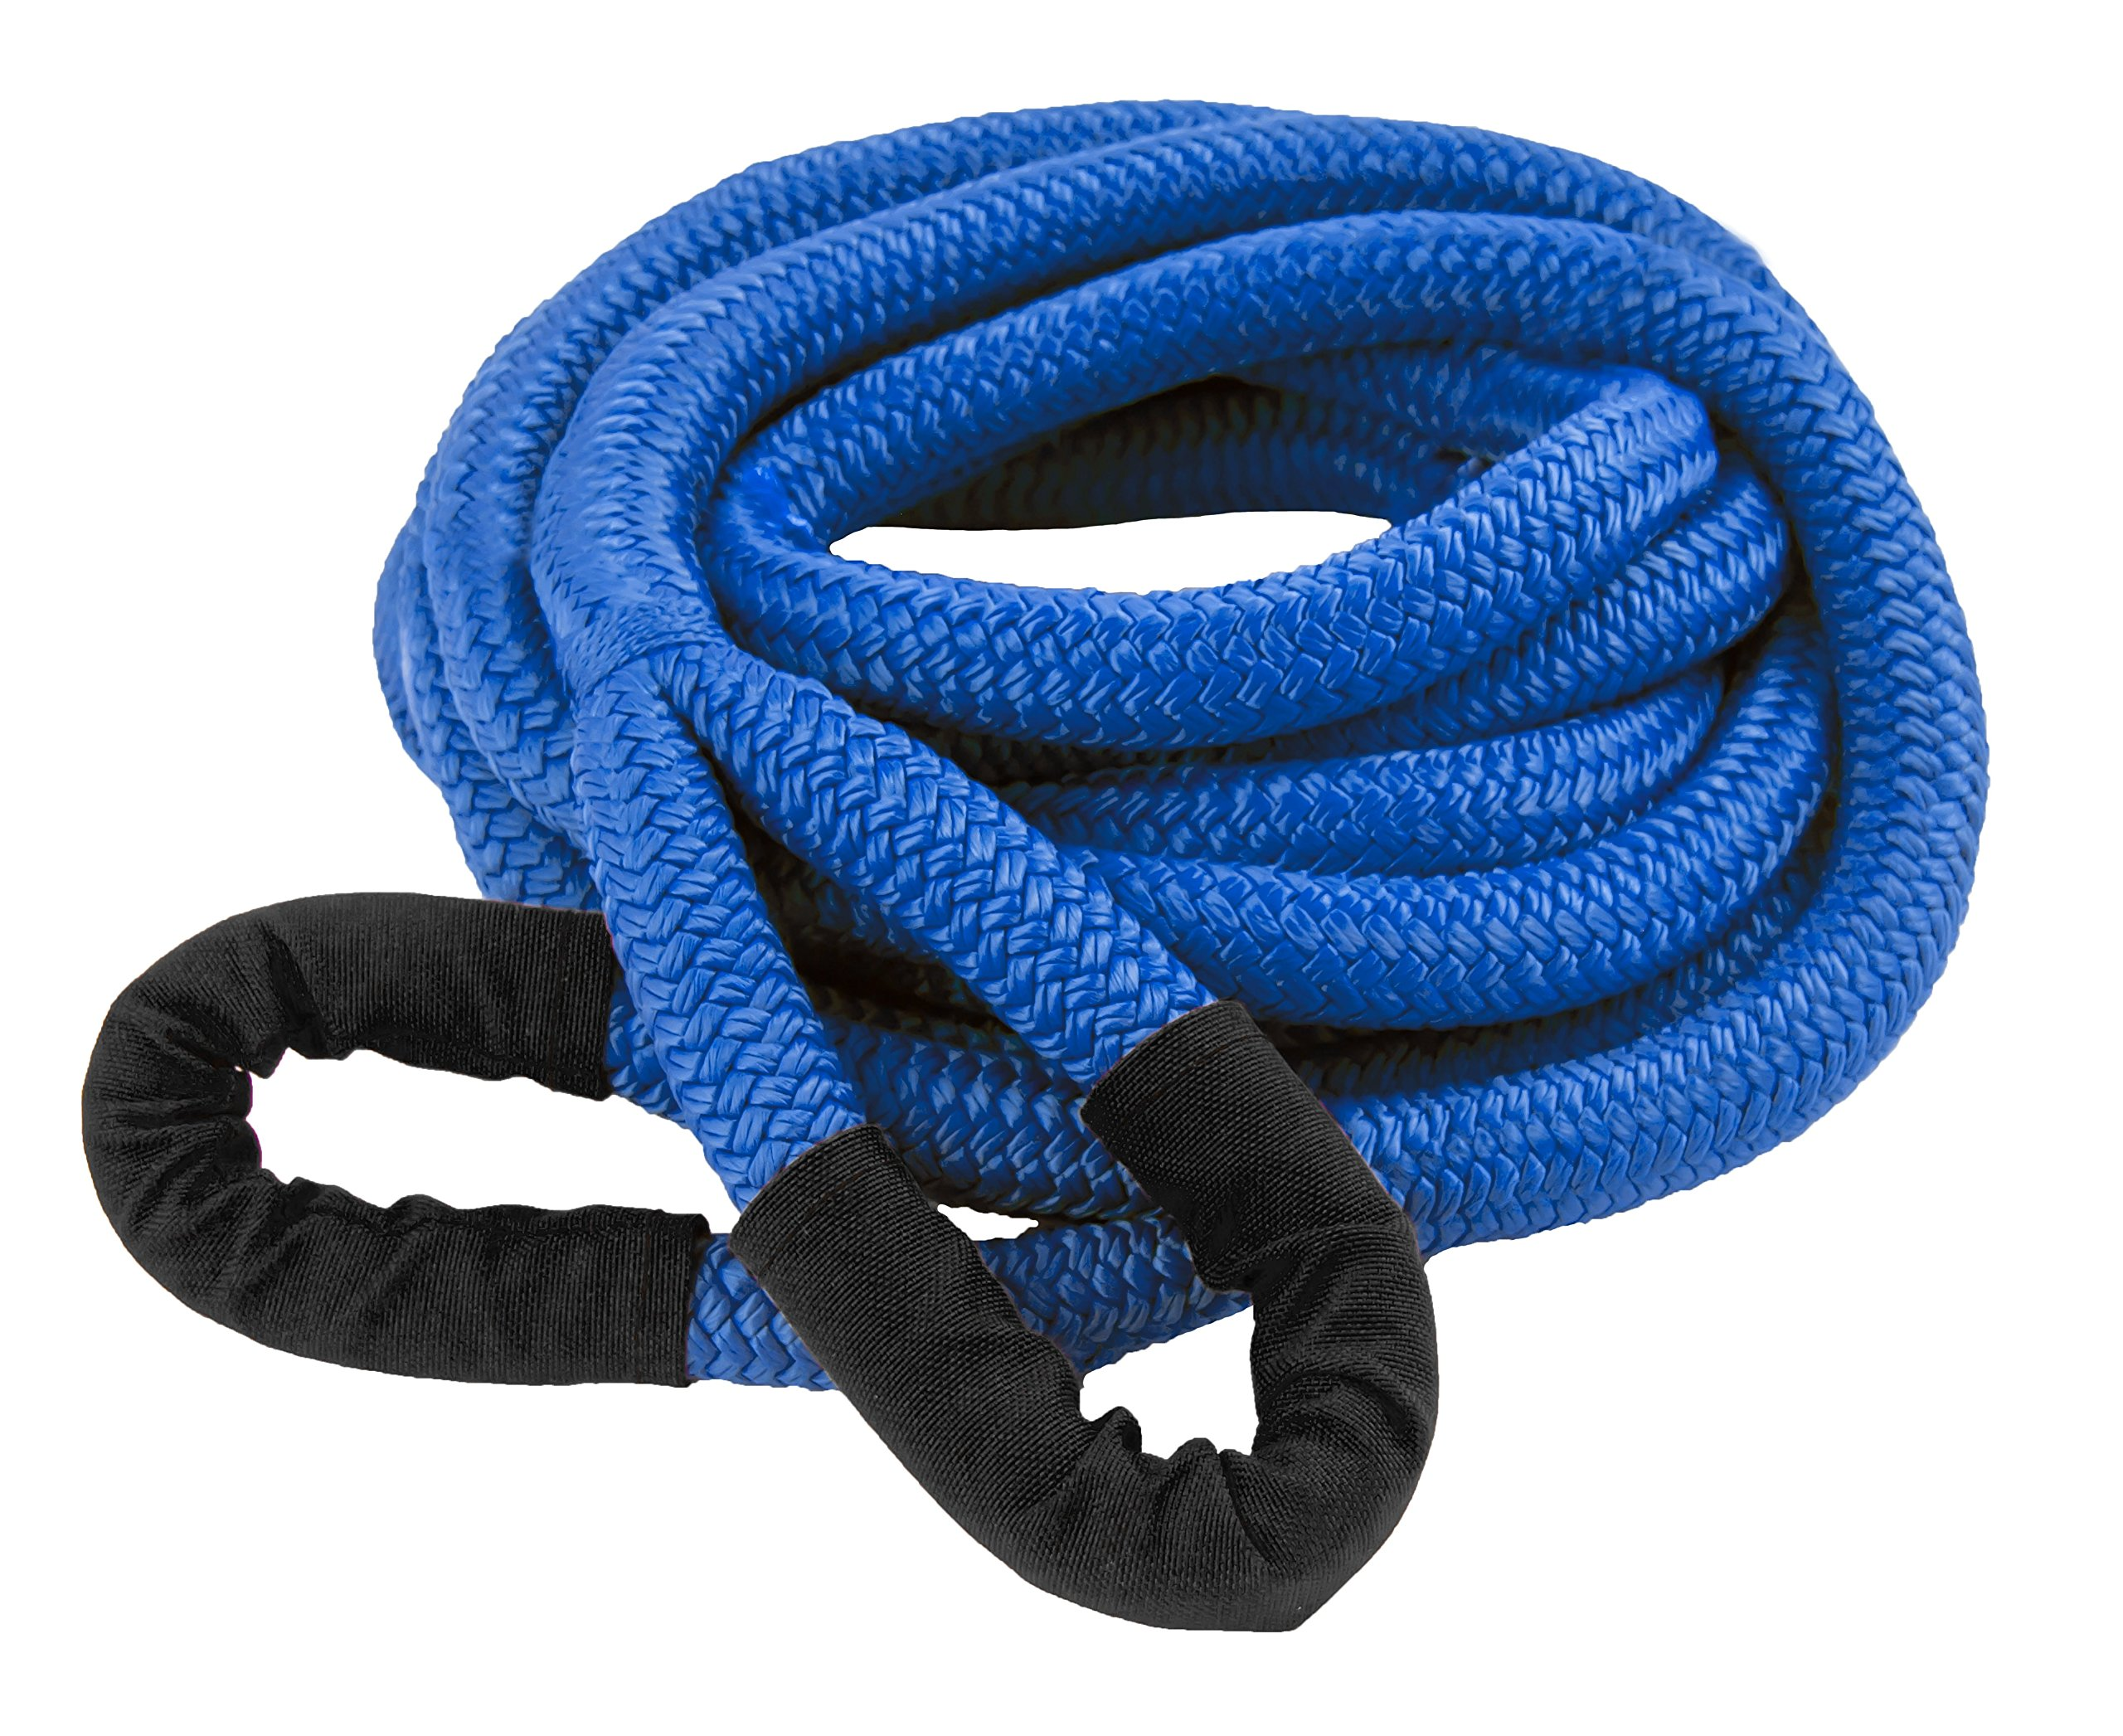 DitchPig 447051 Kinetic Energy Vehicle Recovery Double Nylon Braided Rope with Tote Bag, 1/2'' x 20'